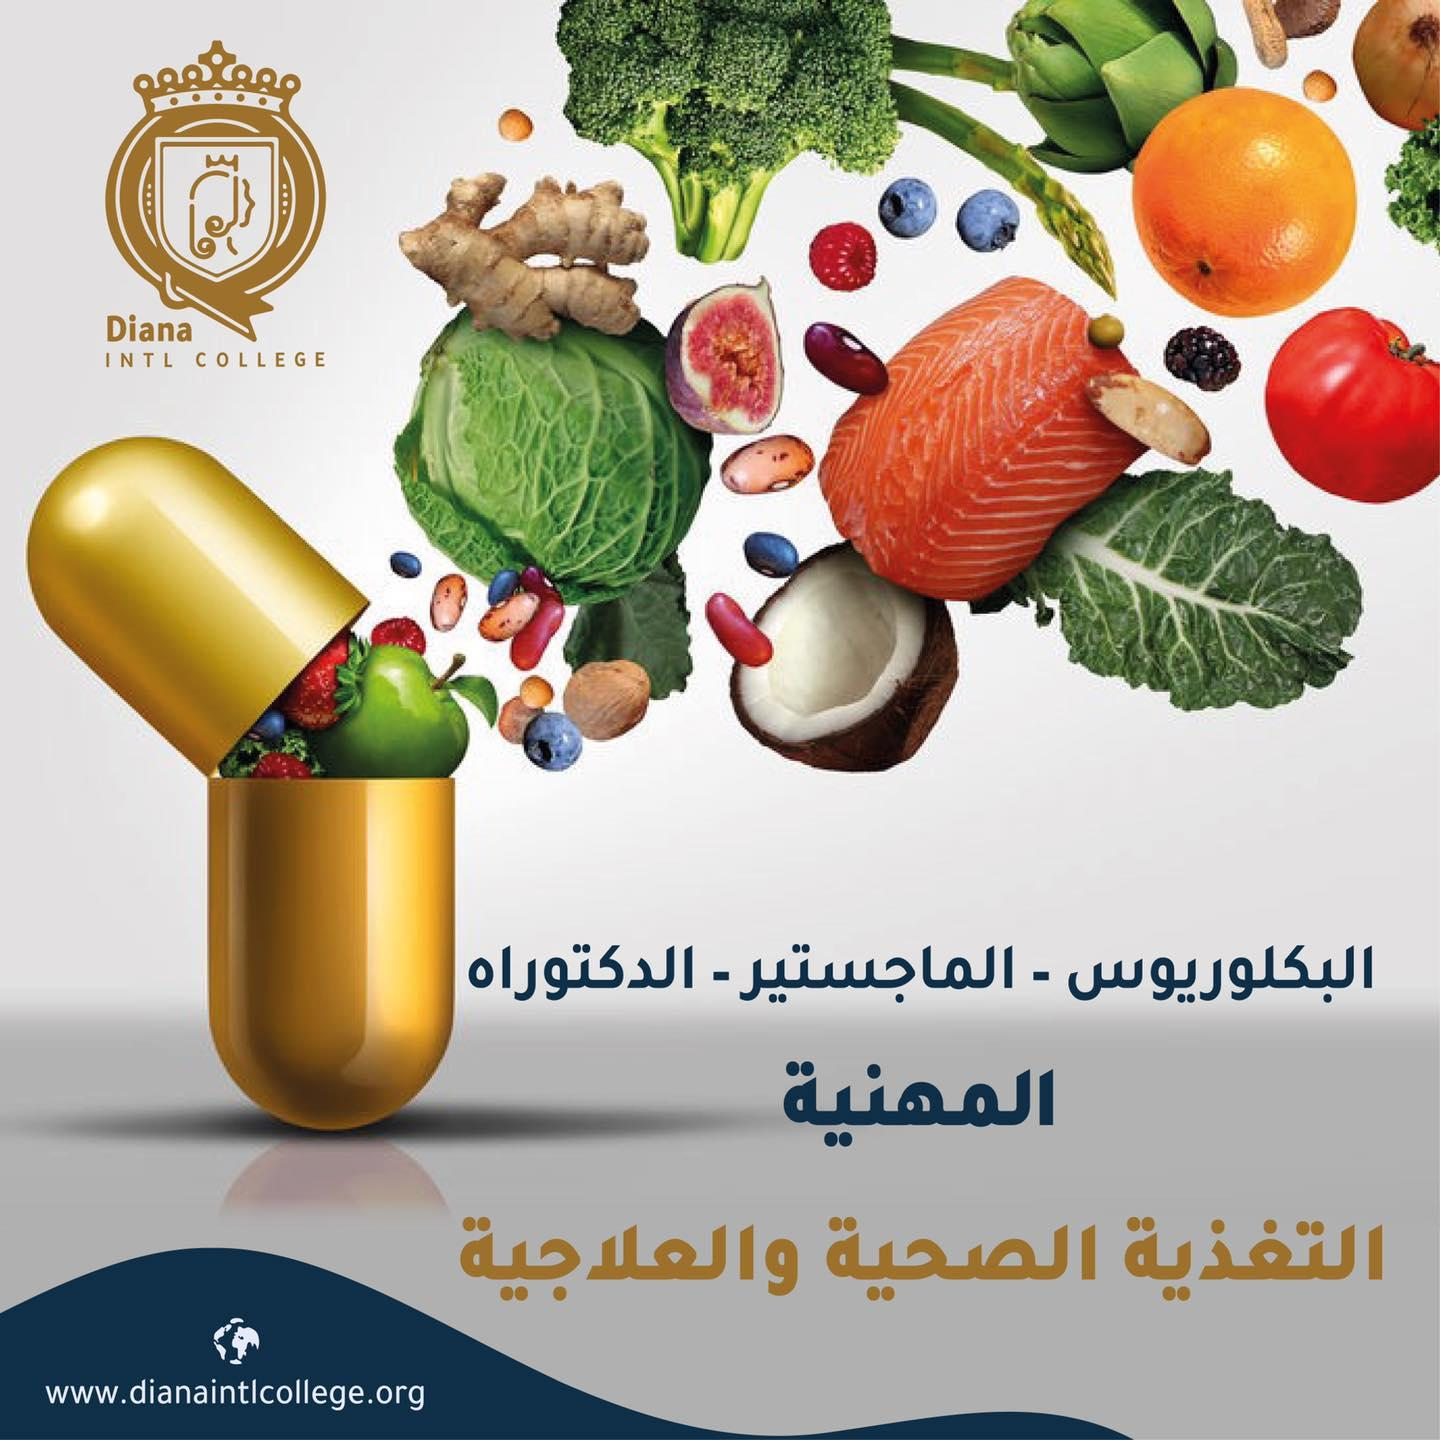 Department of Health and Therapeutic Nutrition